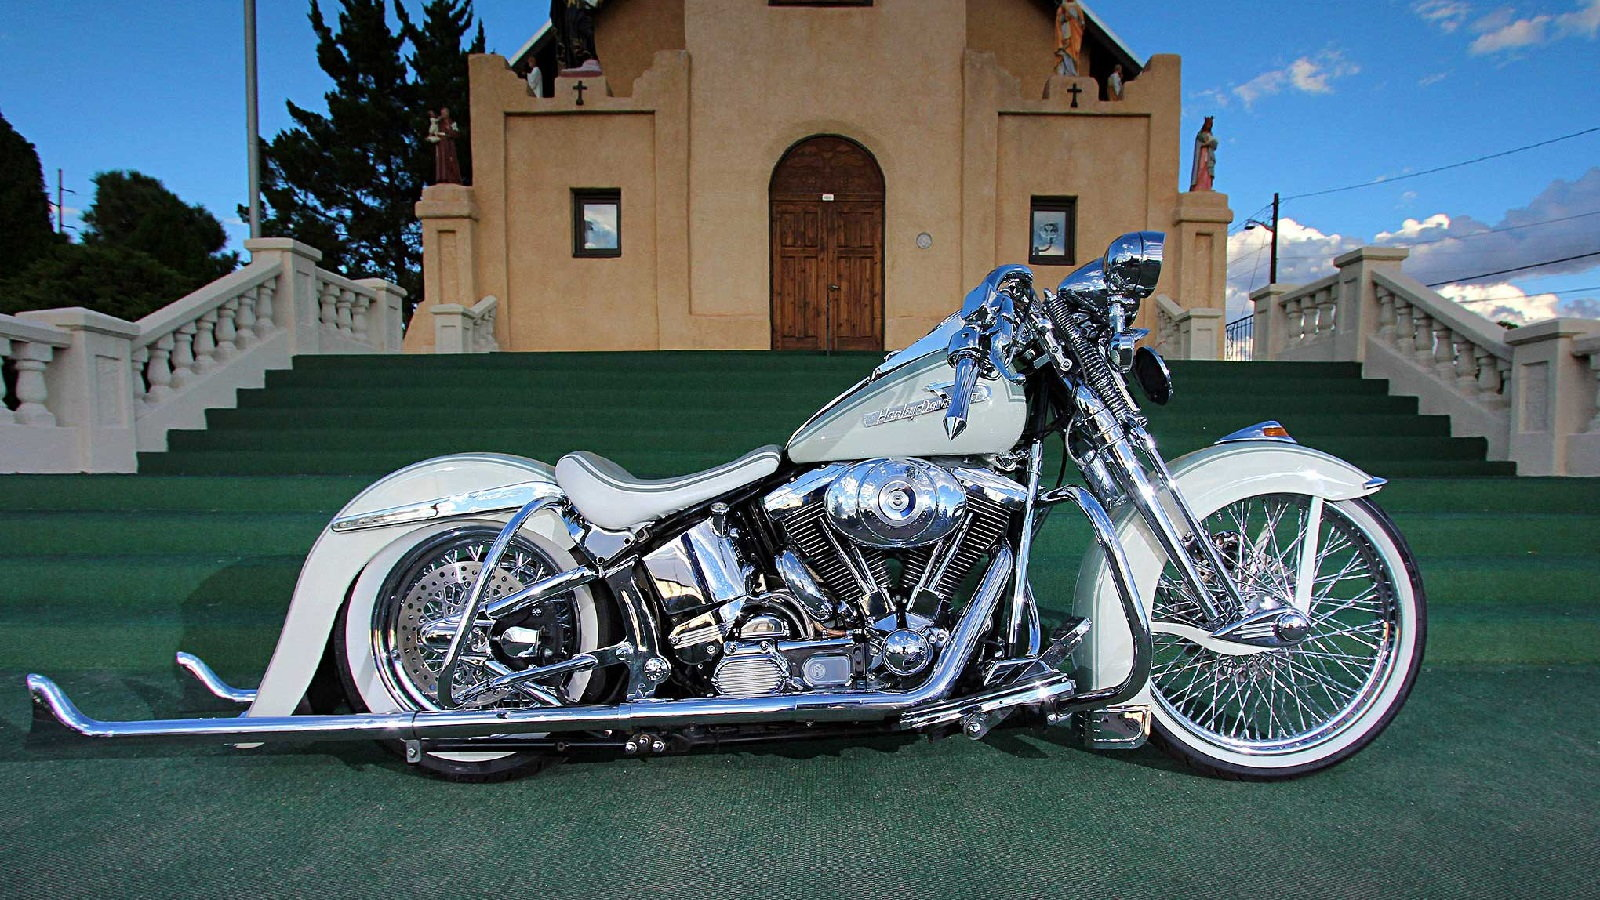 2002 Harley Heritage Springer is a Goal Realized